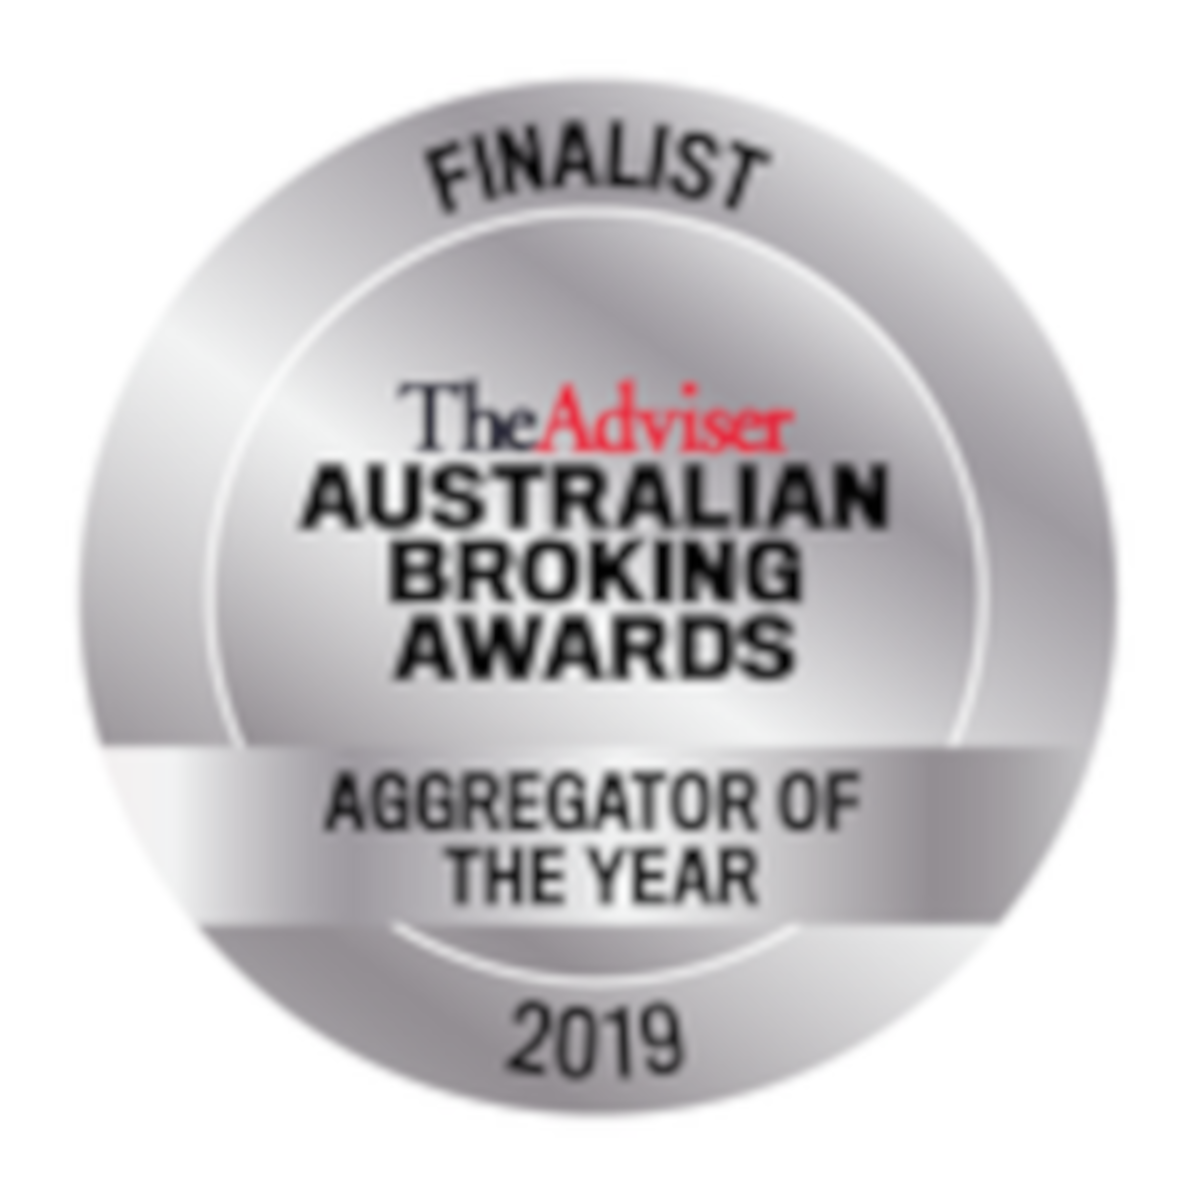 ABA 2019 Finalist Aggregator of the year